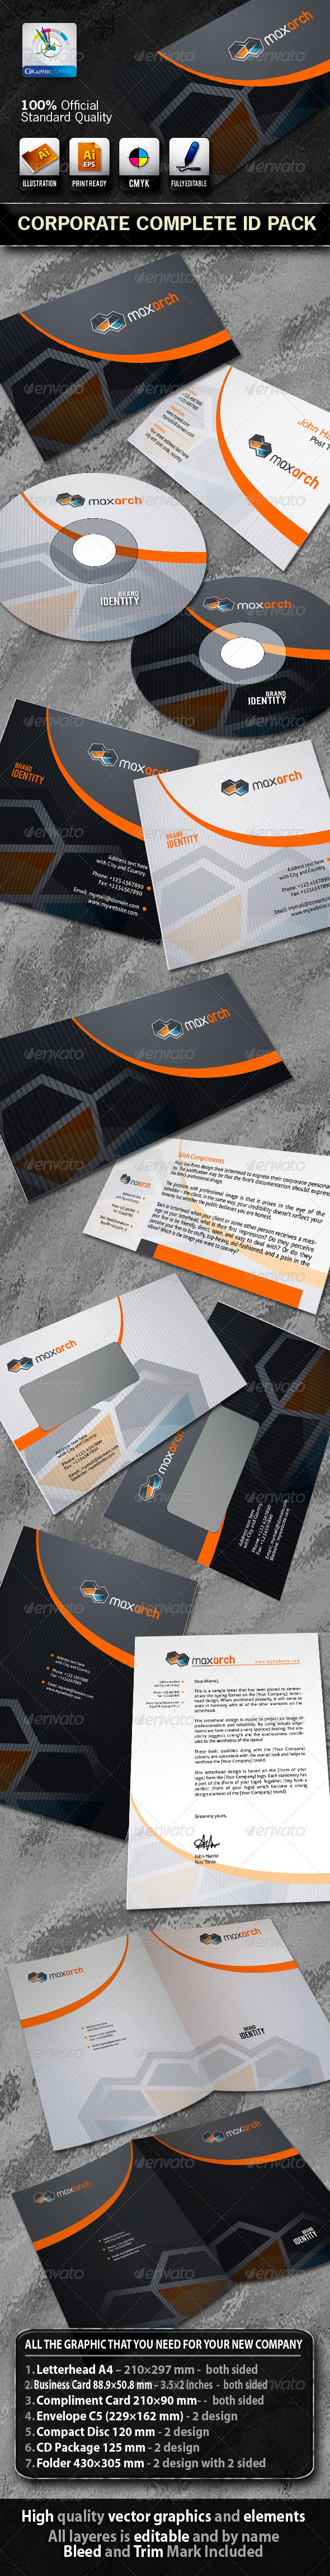 MaxArch Business Corporate ID Pack With Logo - Stationery Print Templates